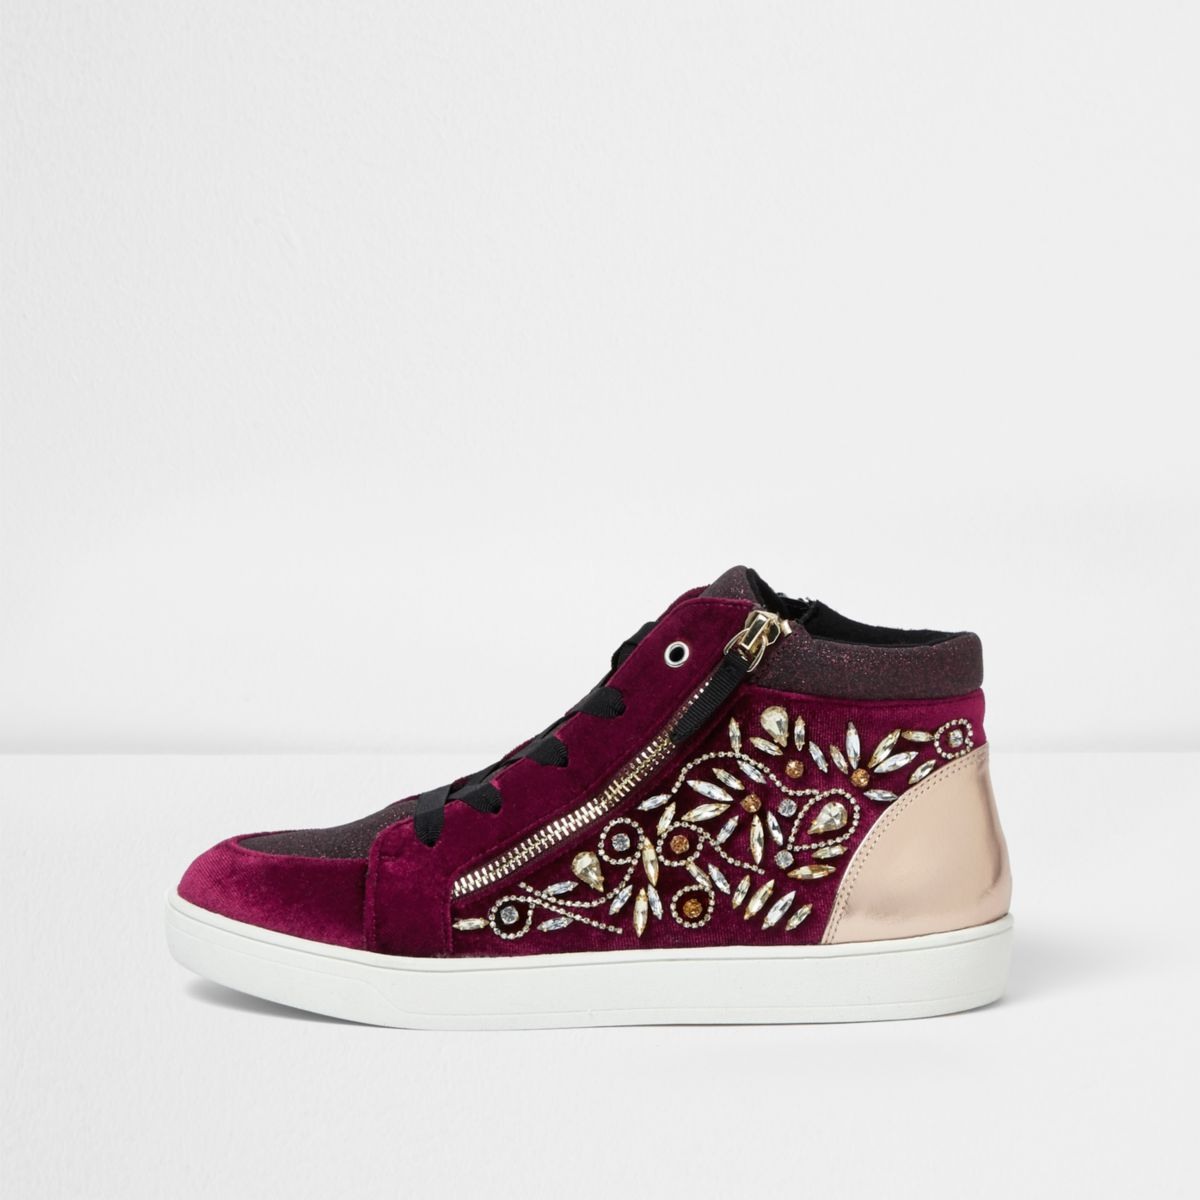 Dark red gem embellished hi top sneakers